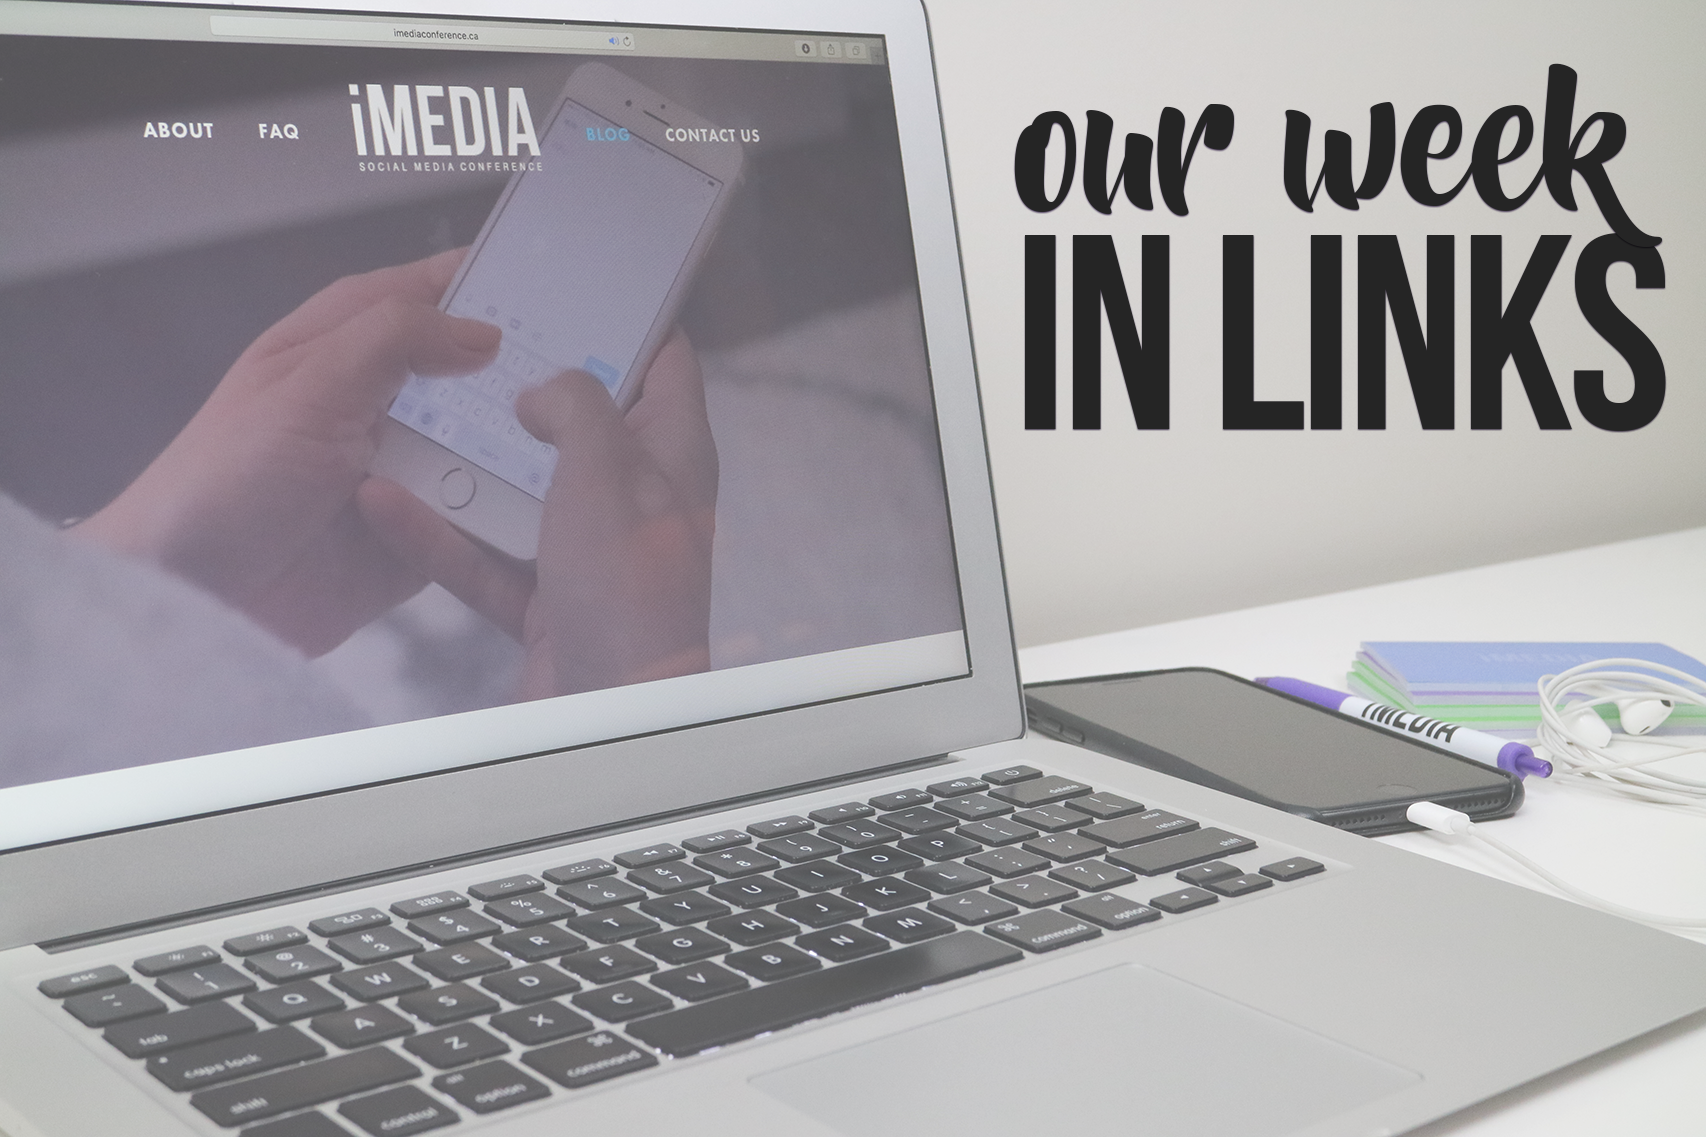 our-week-in-links-imedia.png